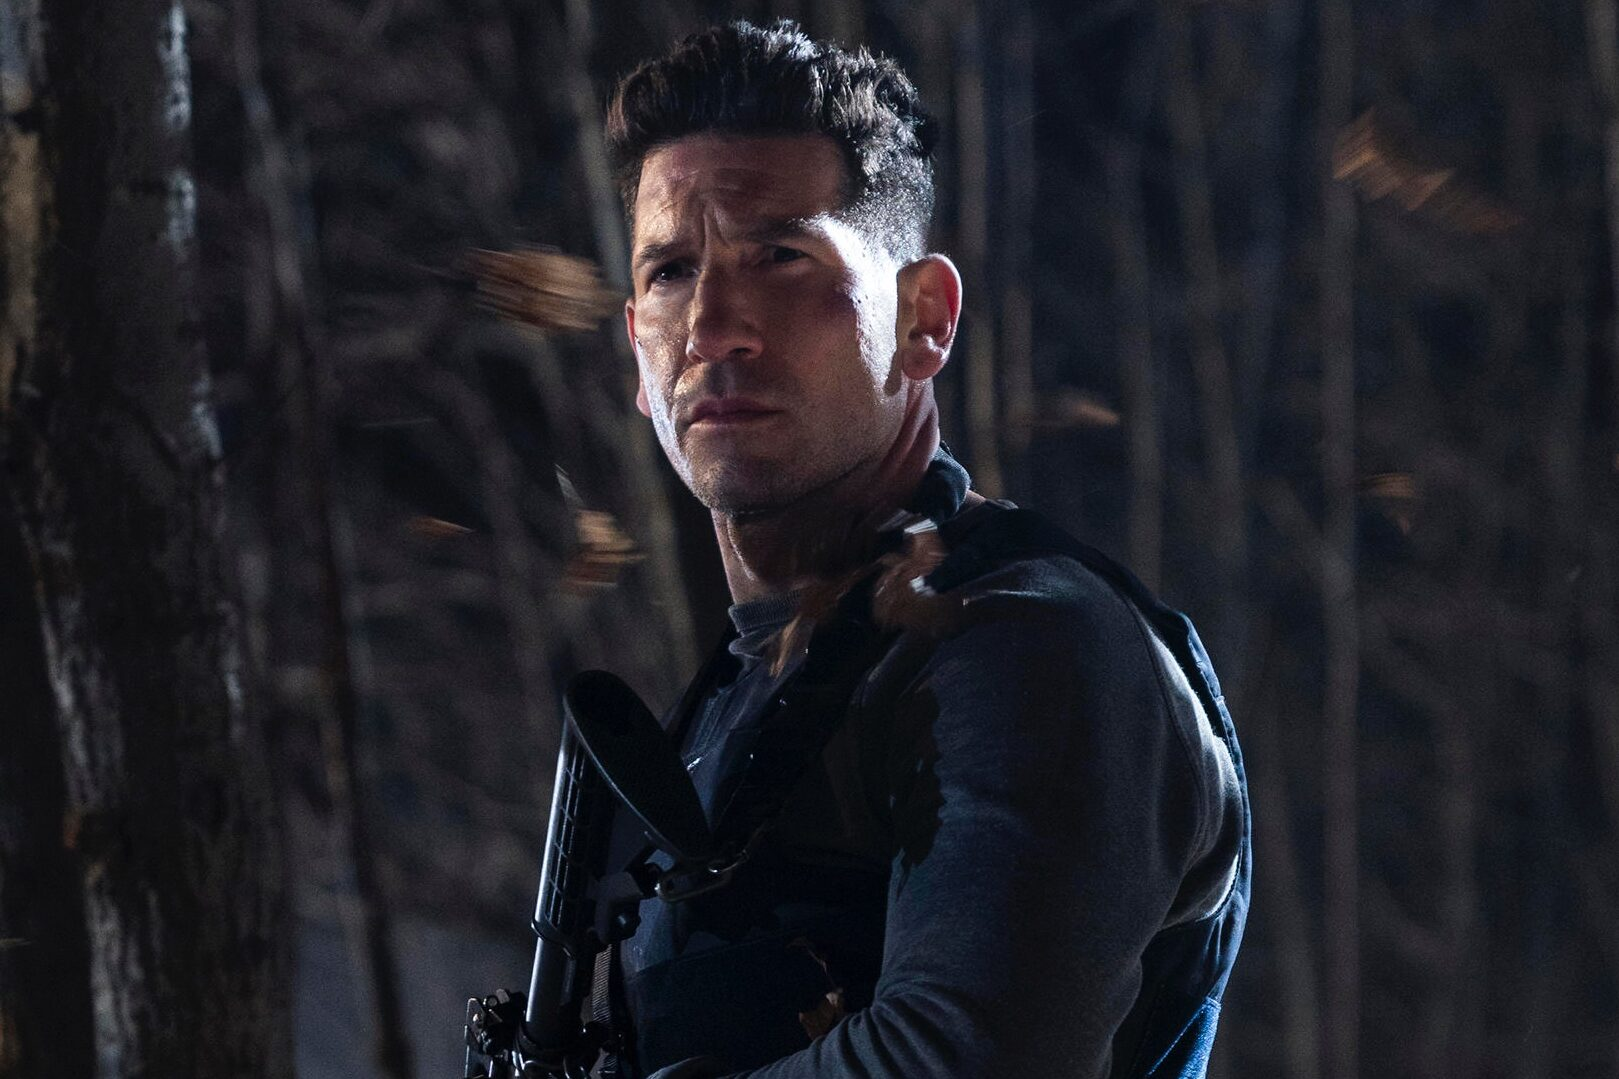 Jon Bernthal Punisher